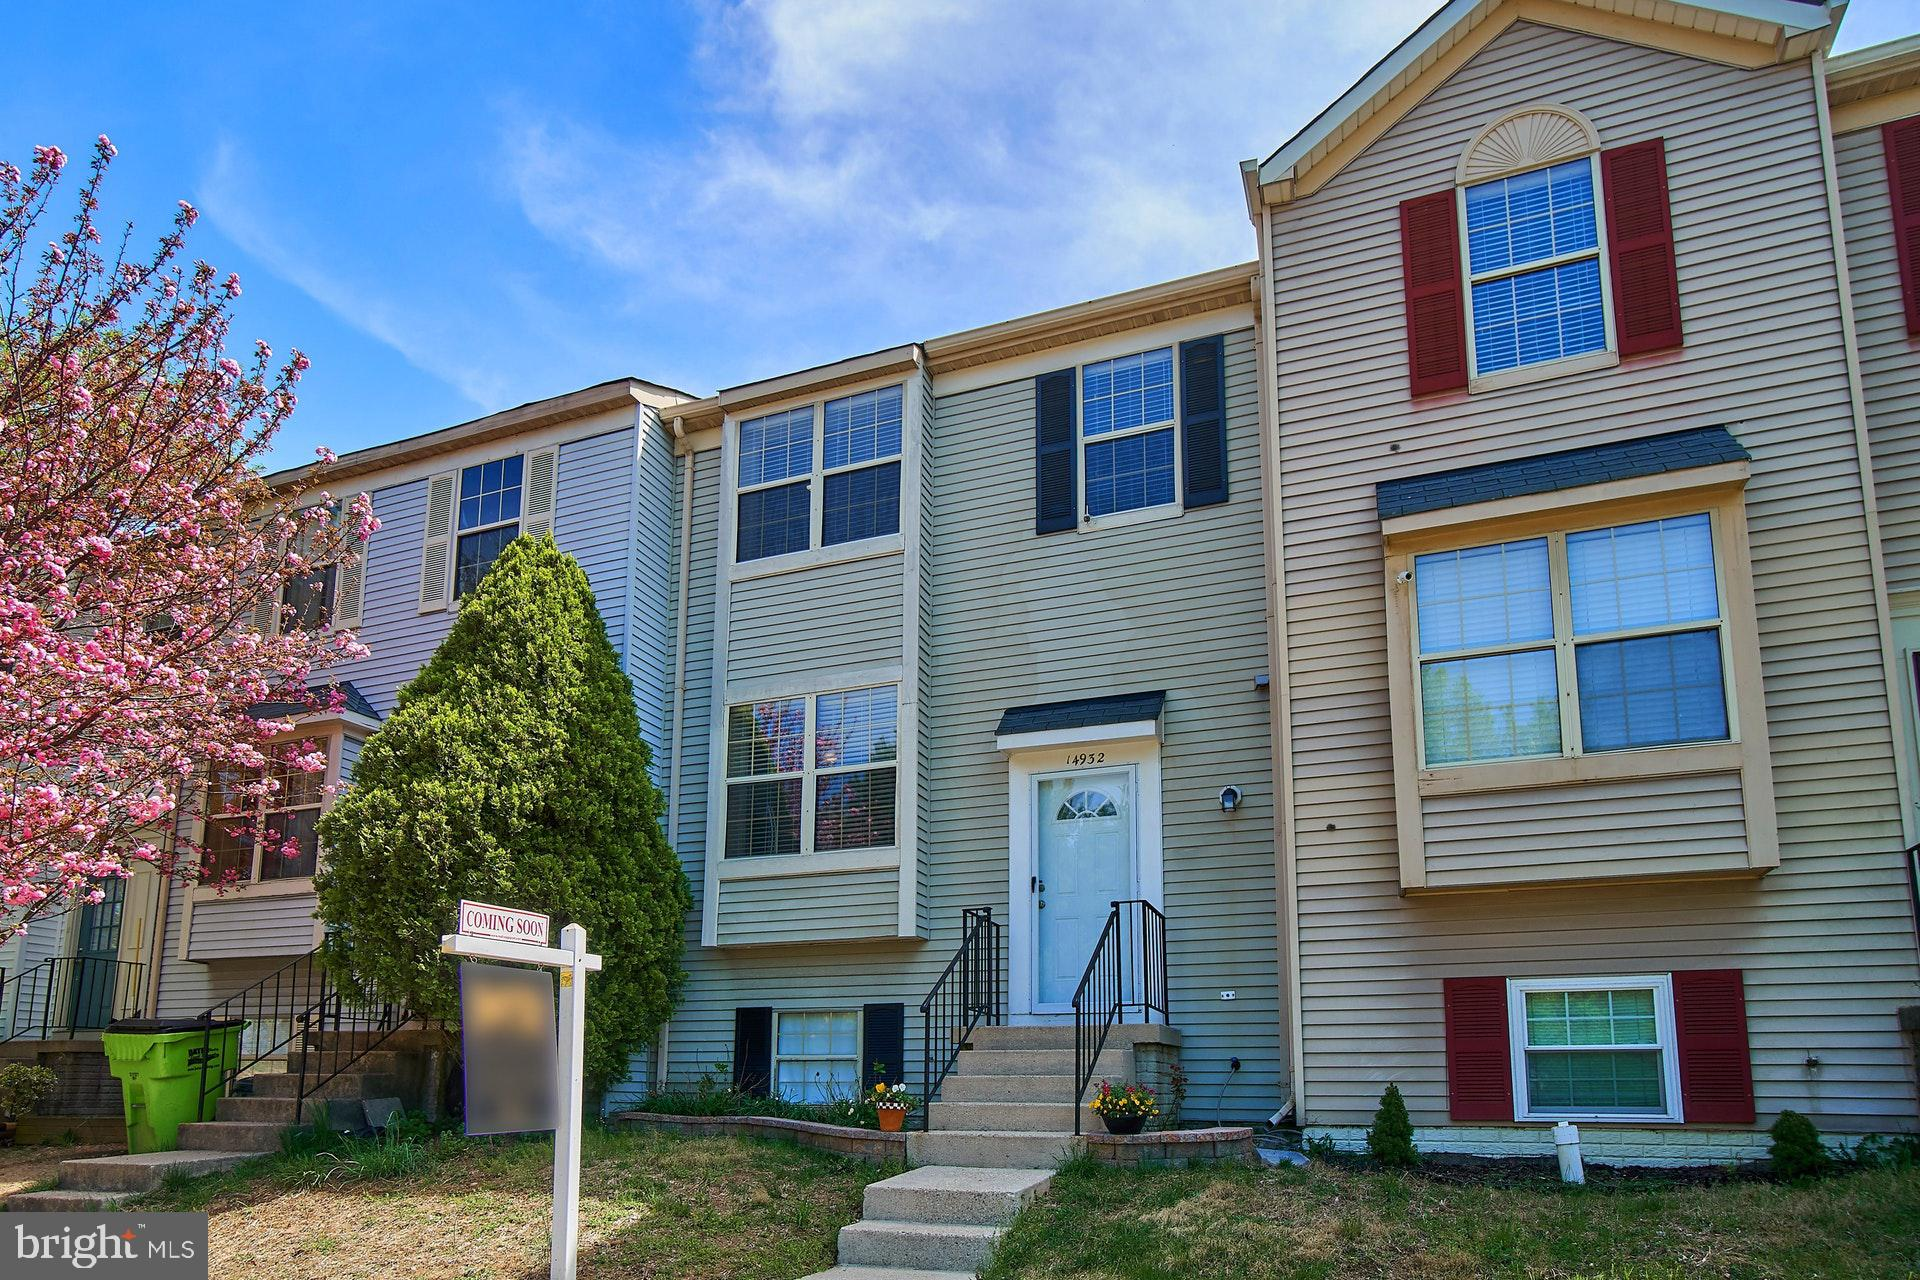 Gorgeous 4 bedroom & 3.5 bath townhome that has been updated from top to bottom.  Gourmet kitchen features cherry cabinets, granite counters, designer backsplash, stainless steel appliances, and bar seating.  Gleaming hickory wood floors on the main and upper level and recessed lights throughout.  Large living room has wood-burning fireplace and opens to a spacious deck prefect for grilling and entertaining.  All bathrooms have been updated, and the home is freshly painted.  Lower level offers family room, 4th bedroom & full bath plus additional storage.  Just minutes to 95 and Stone Bridge shopping center with Wegmans, Apple, Bar Louie, Starbucks and Duck Donuts.